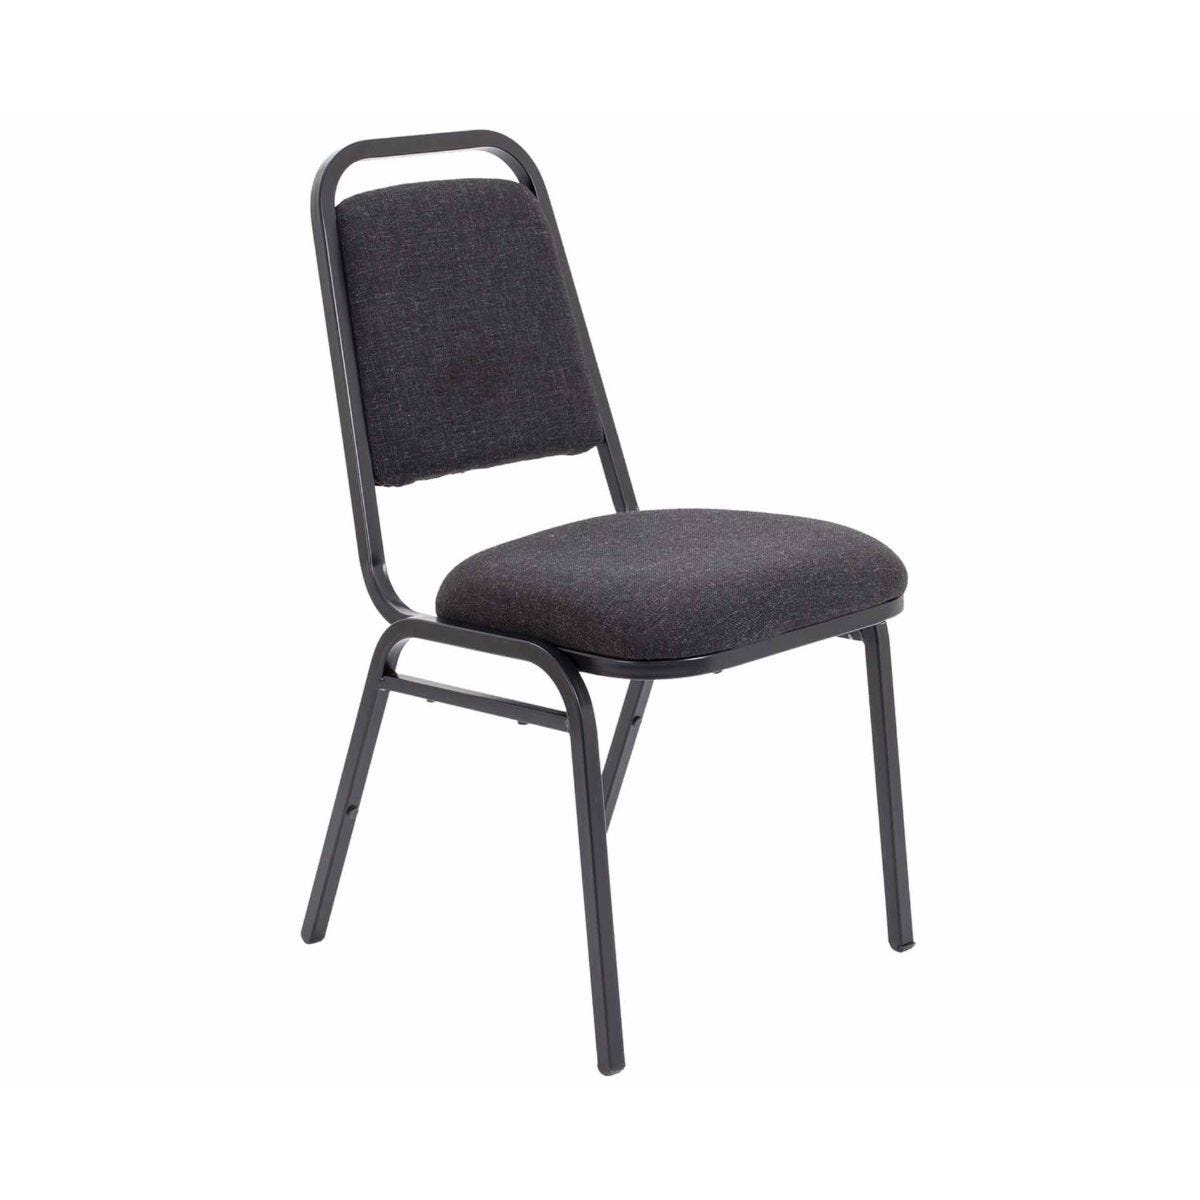 TC Office Padded Banqueting Chair Charcoal